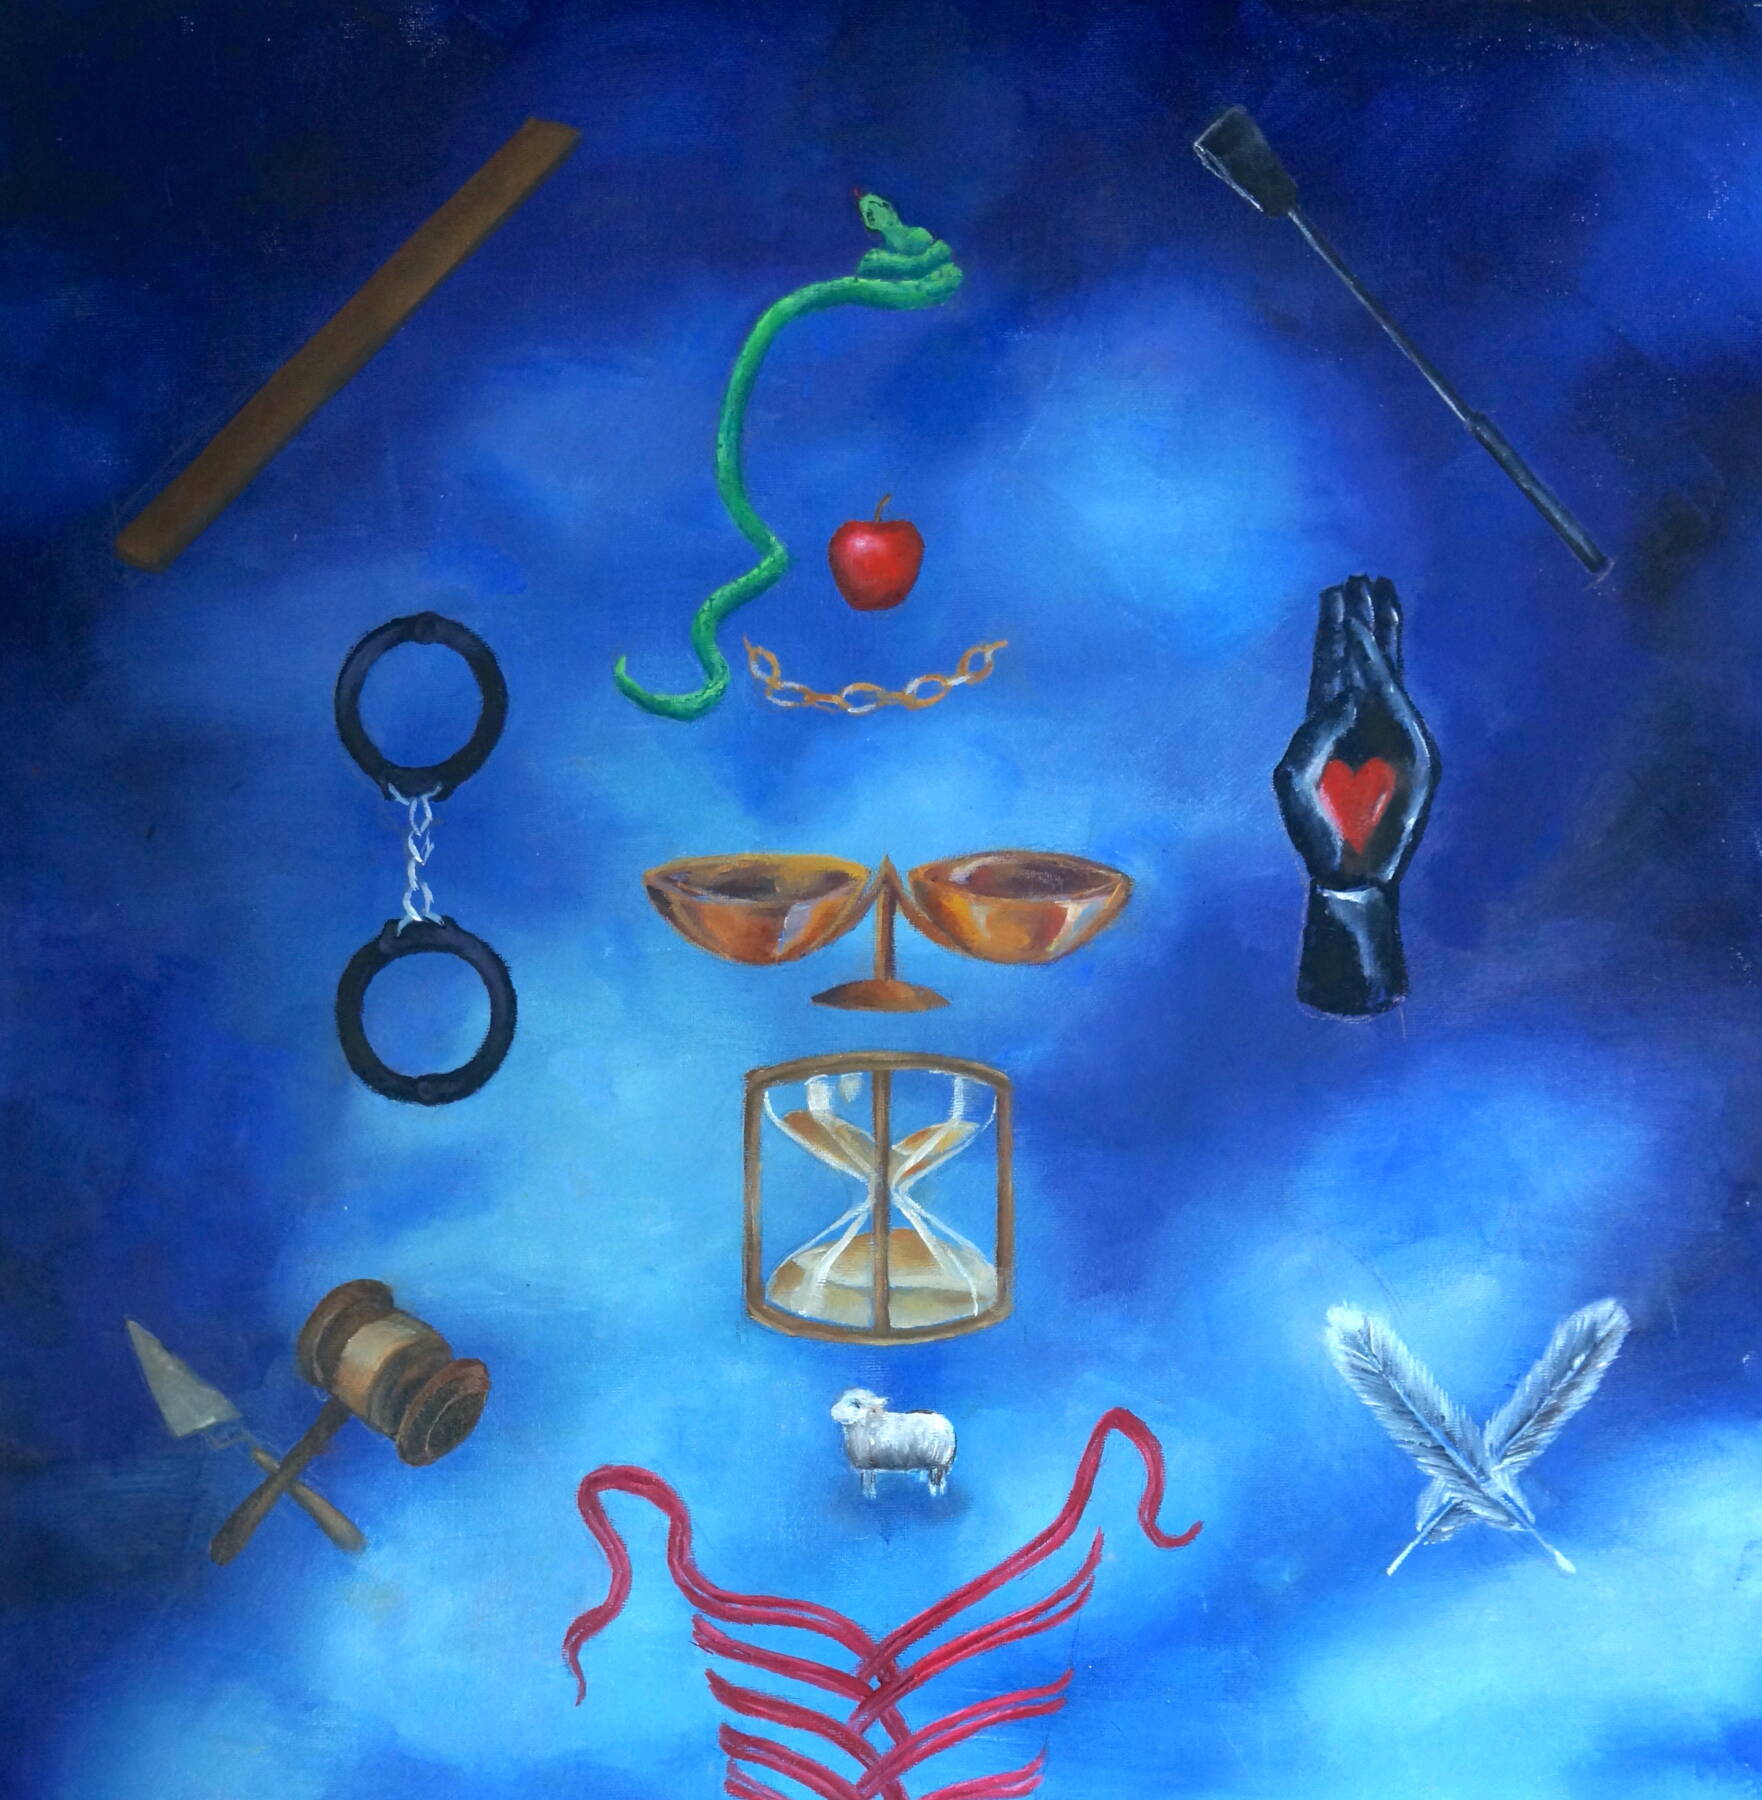 One of Sarah's paintings with various objects including a snake, apple, handcuffs, hourglass and feathers, all on a blue background.